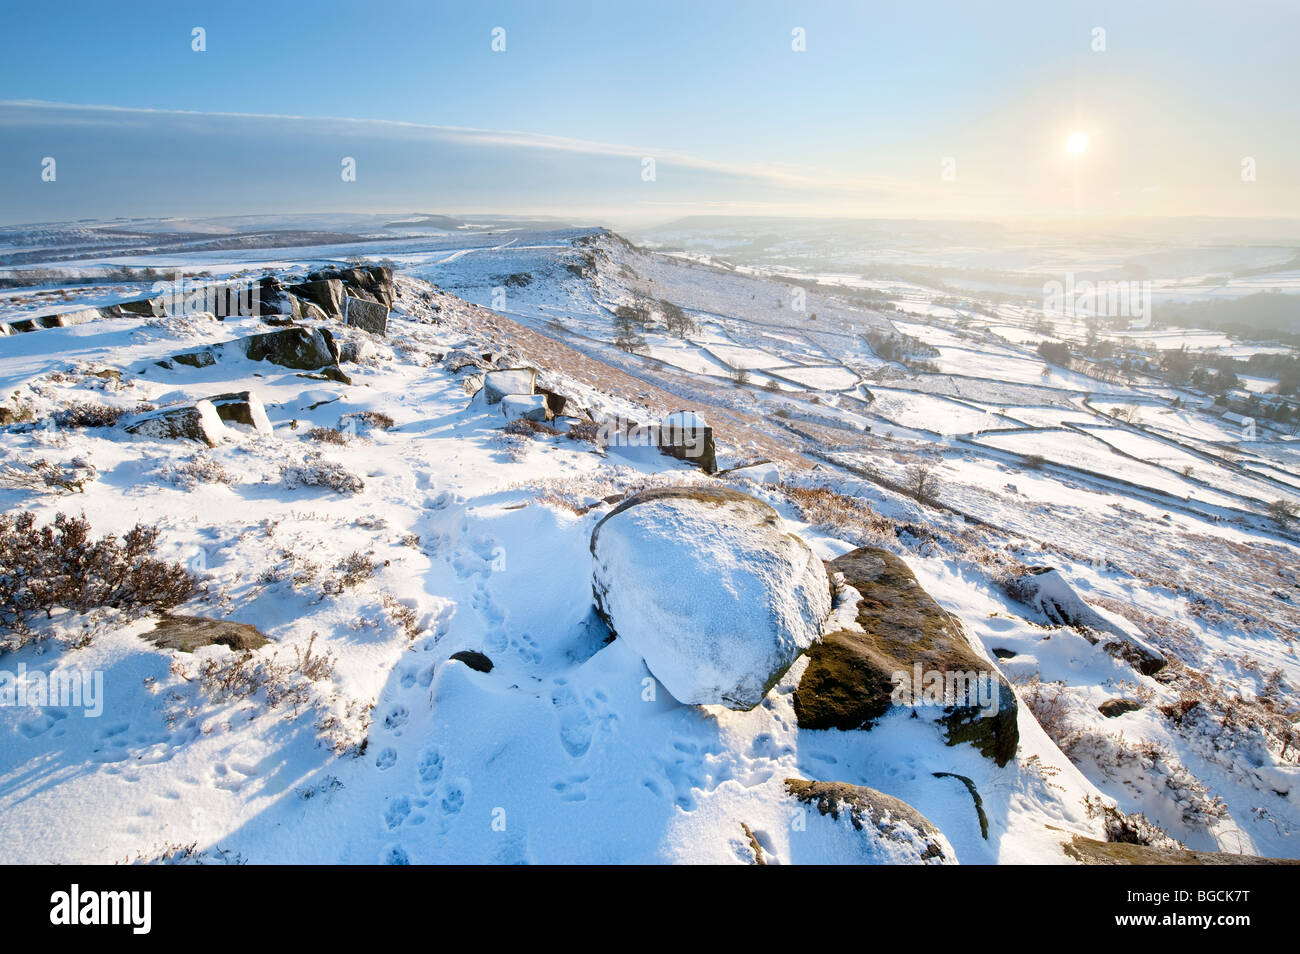 Winter Snow at Curbar Edge in the 'Peak District', Derbyshire, United Kingdom, Great Britain - Stock Image